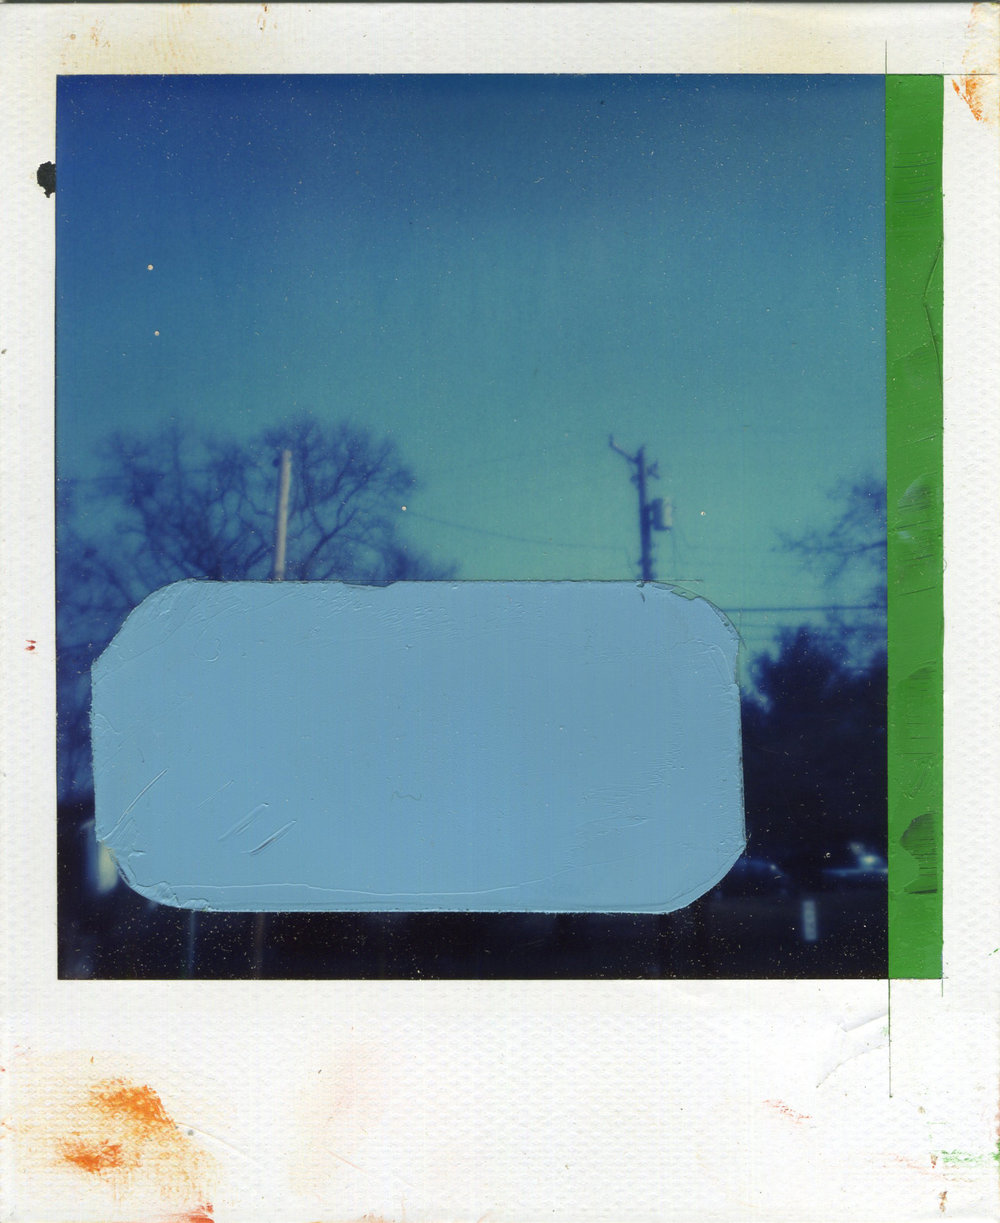 "INTERSECTION (CENSOR)   oil on sx-70 Polaroid | 3.25"" x 4.25"" 